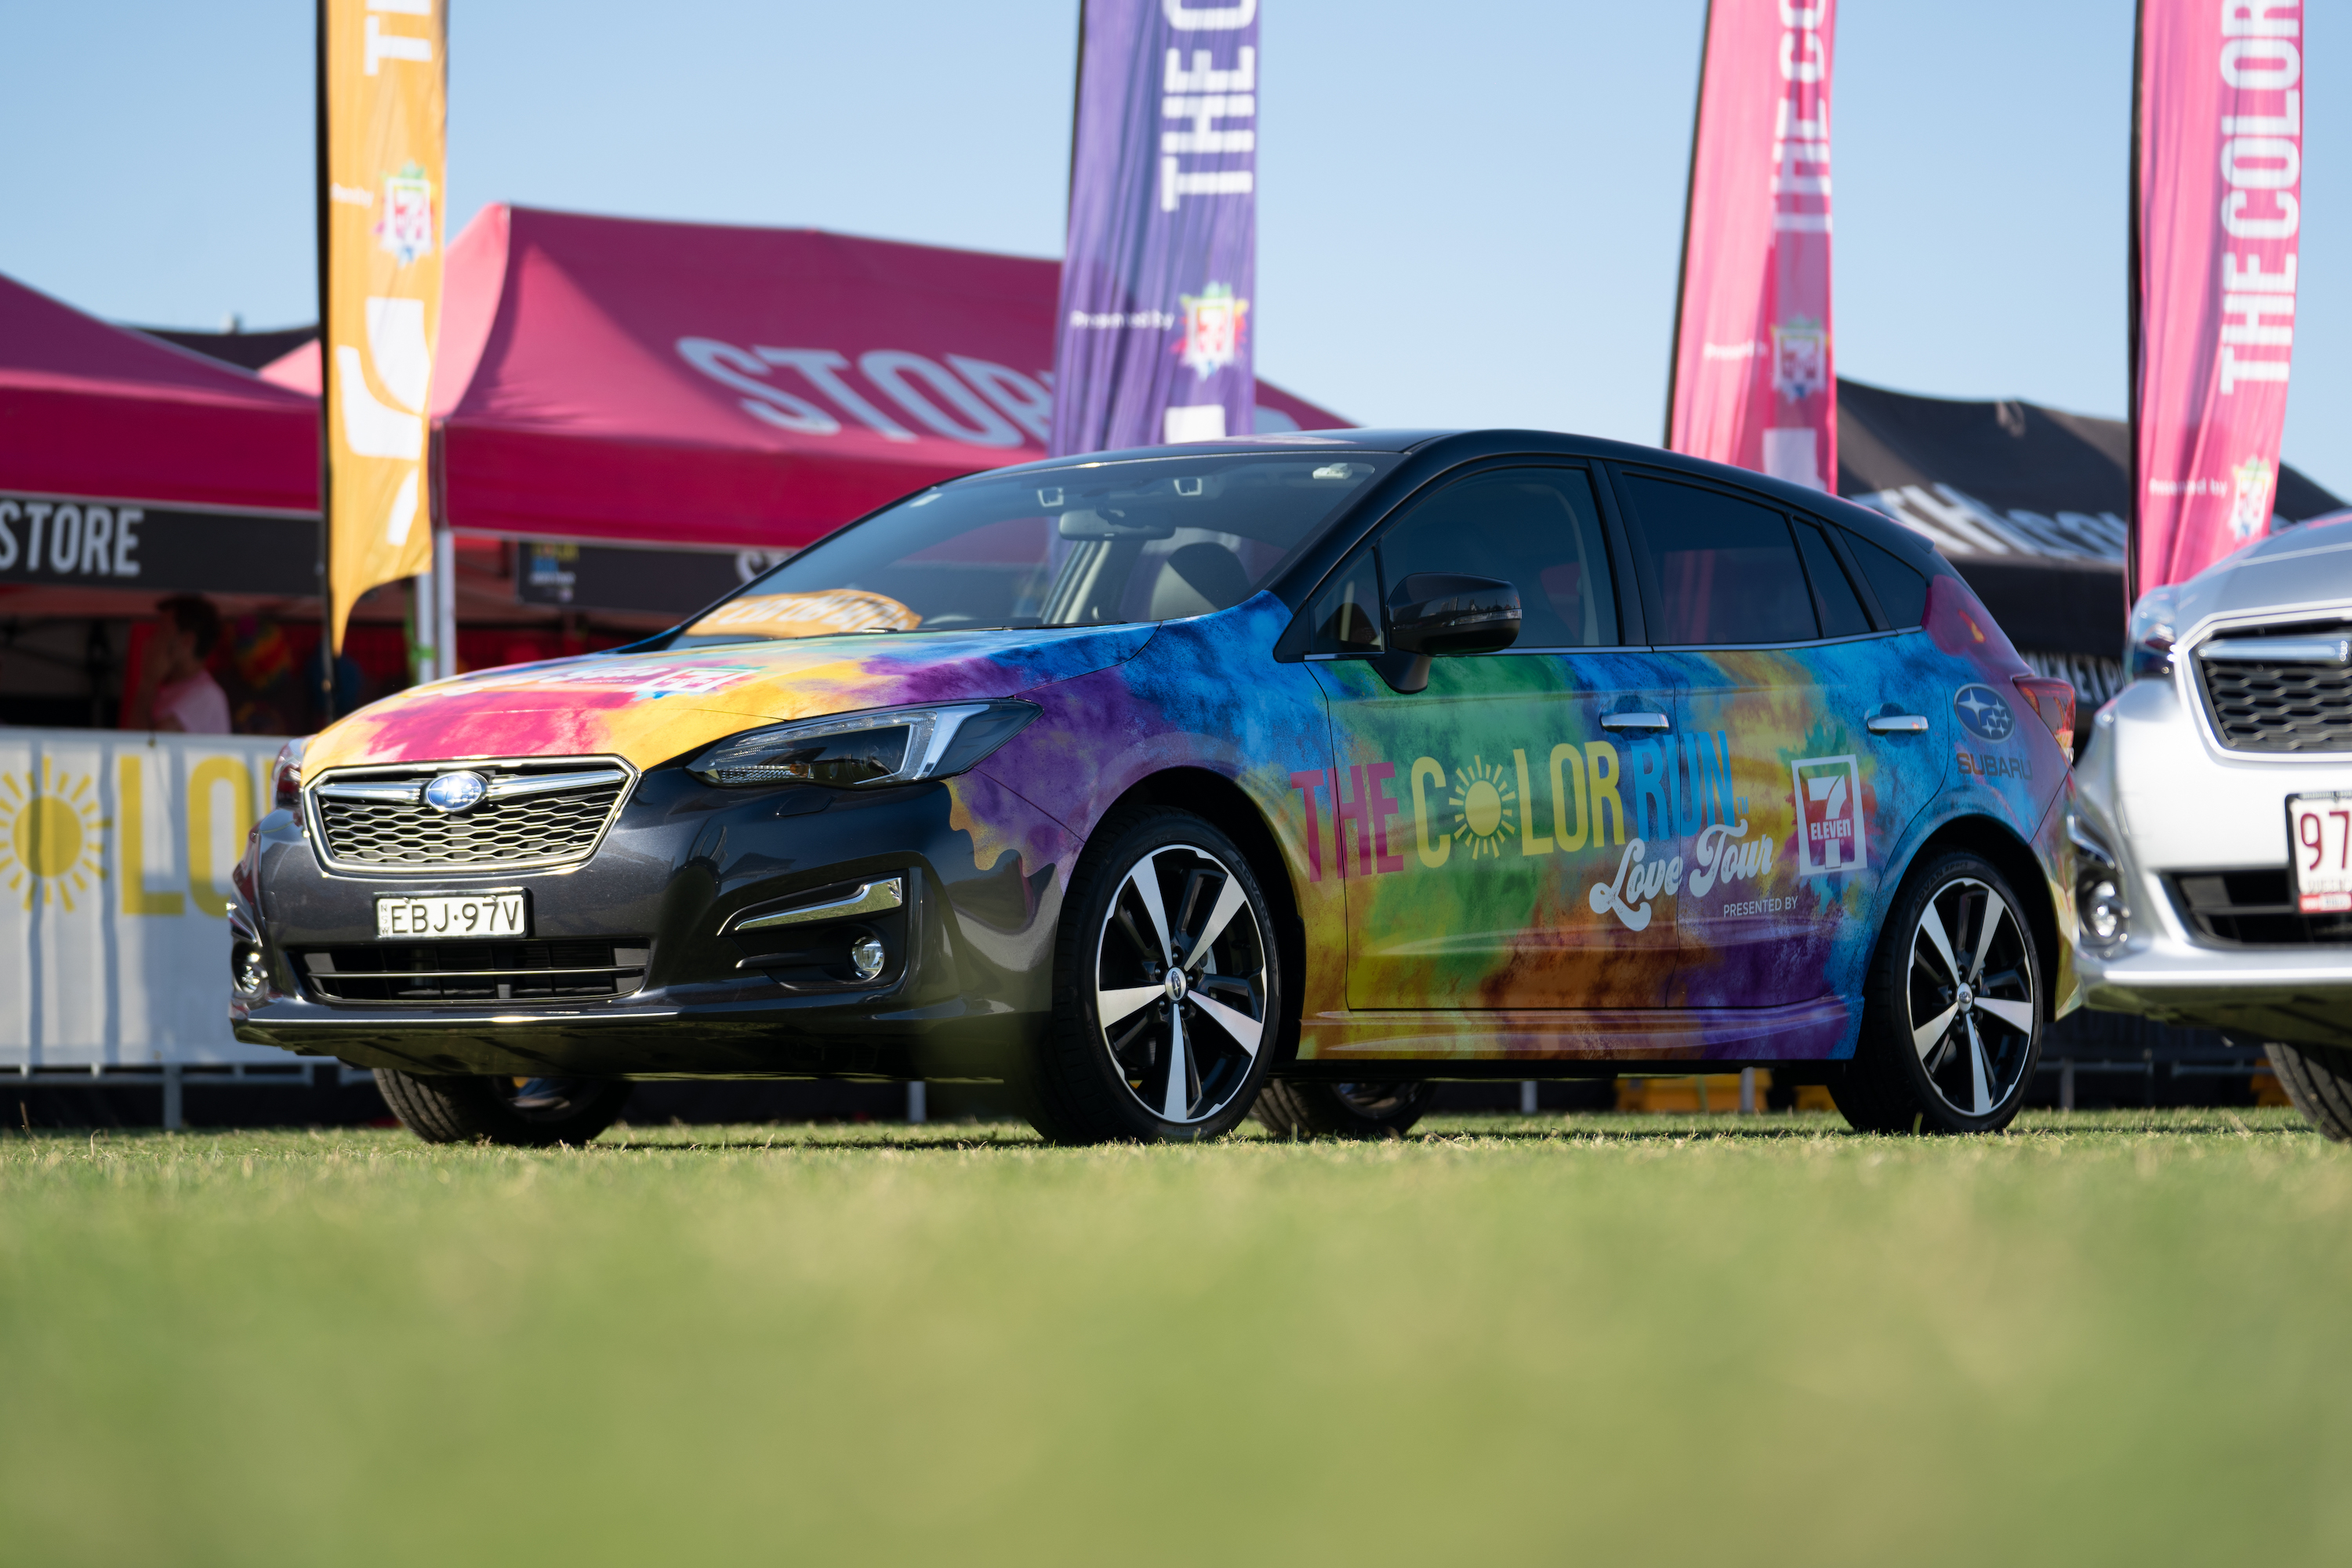 Win tickets to this year's the Color Run Melbourne plus a Subaru Impreza to use for the weekend